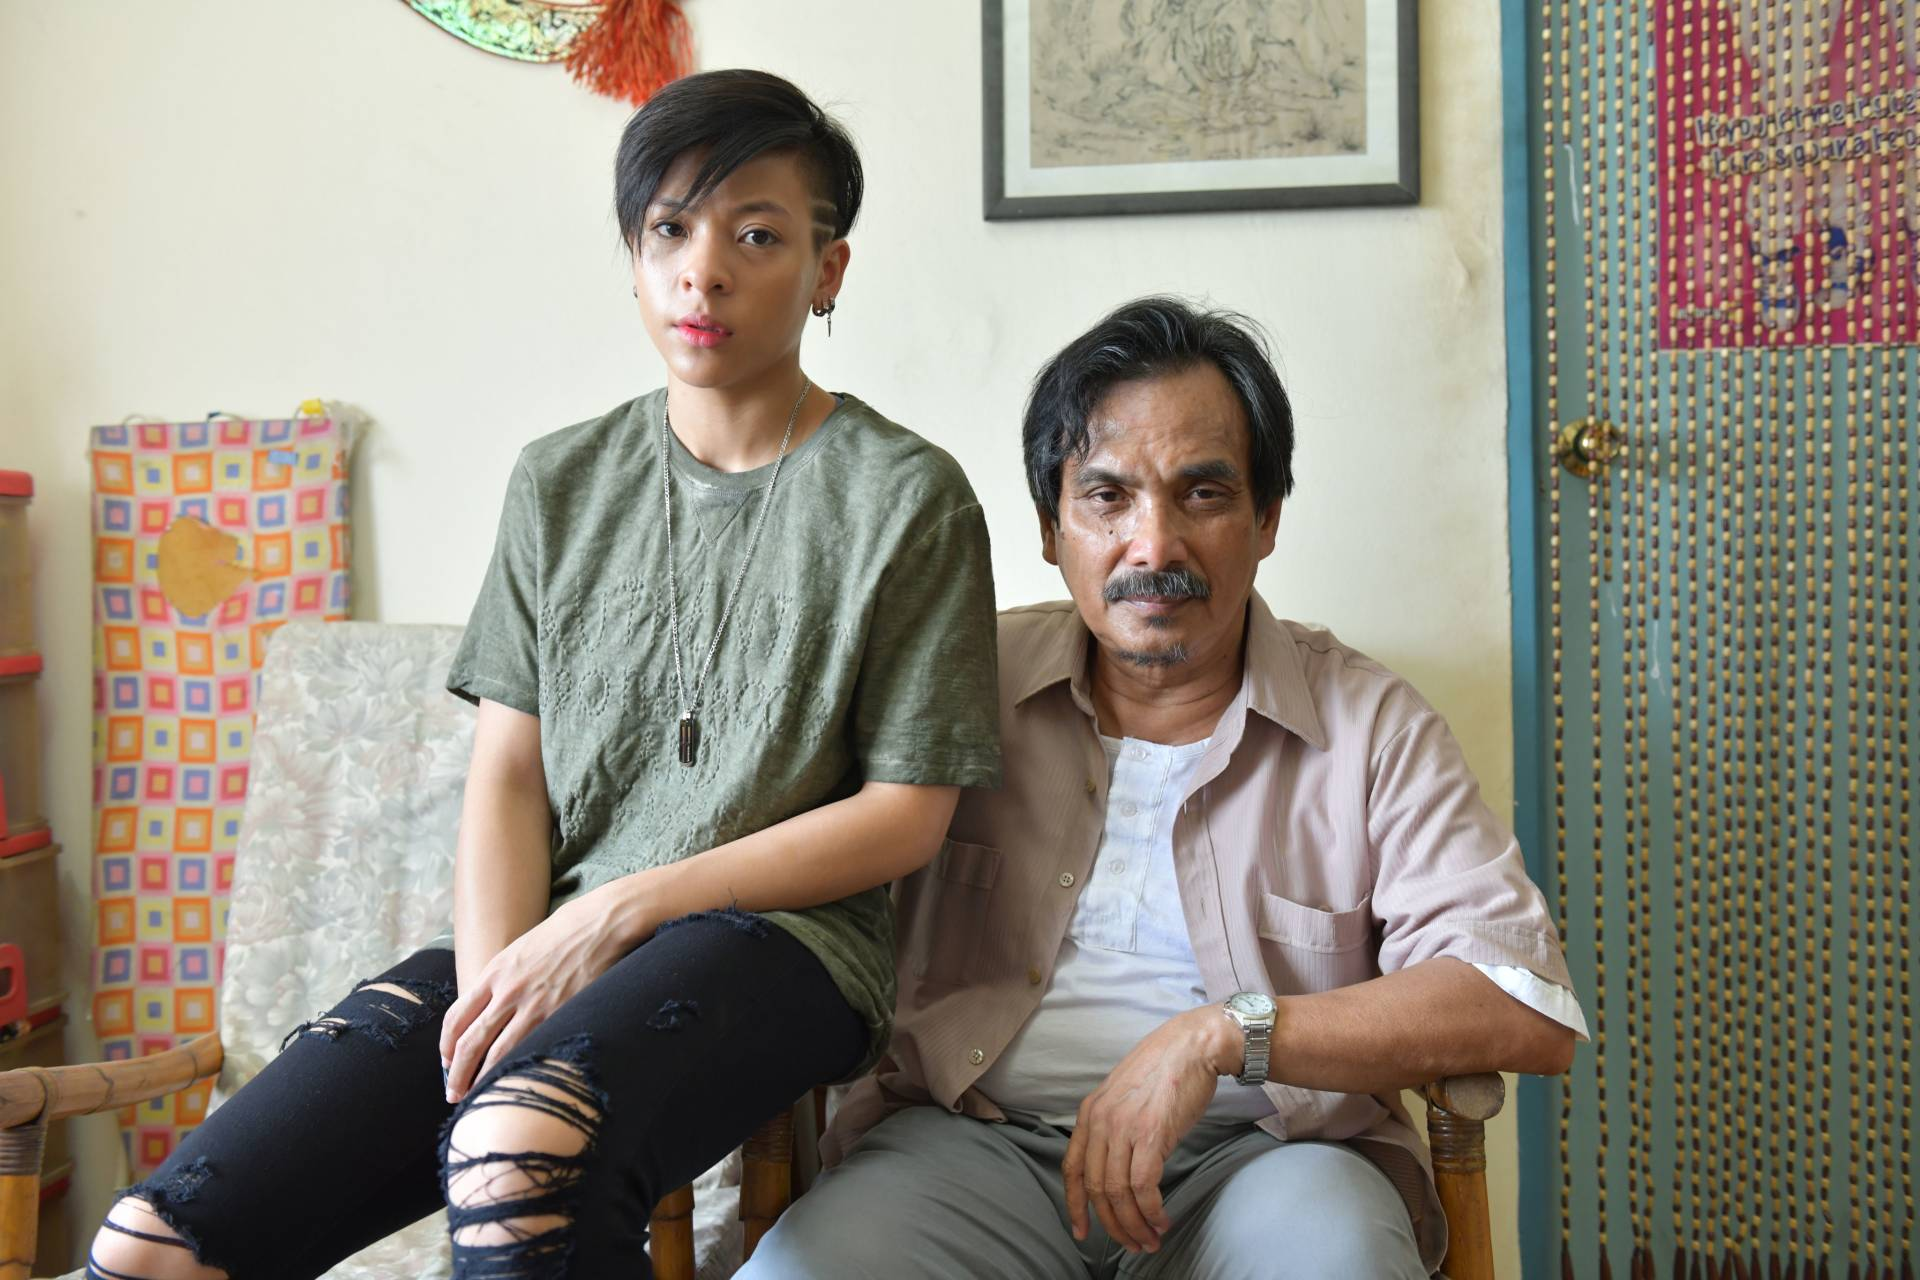 Fify says she got a lot of acting tips from Datuk Hilal Azman who plays her character's father in 'Wira'. Photo: GSC Movies